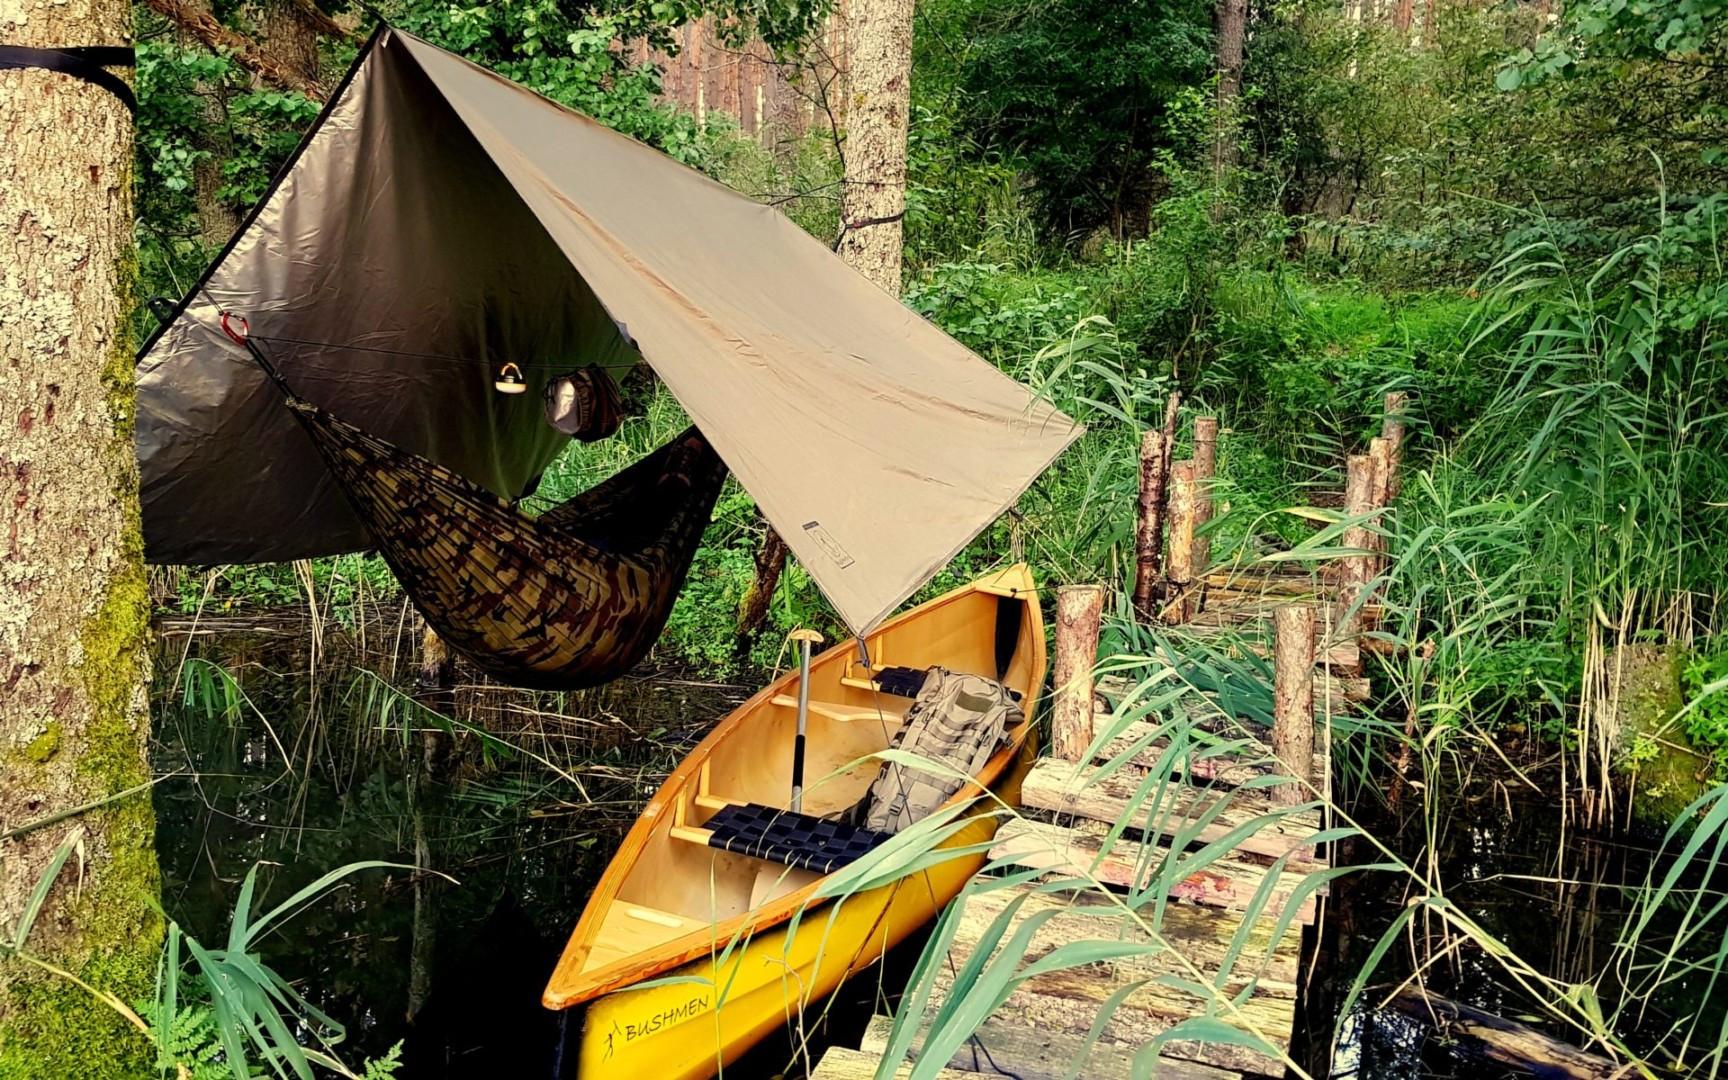 THERMO-Tarp 3x3 / olive - fabric with insulation layer and ripstop weave.  Triple stitch enforcements, 19 loops! + transportation bag with handles.